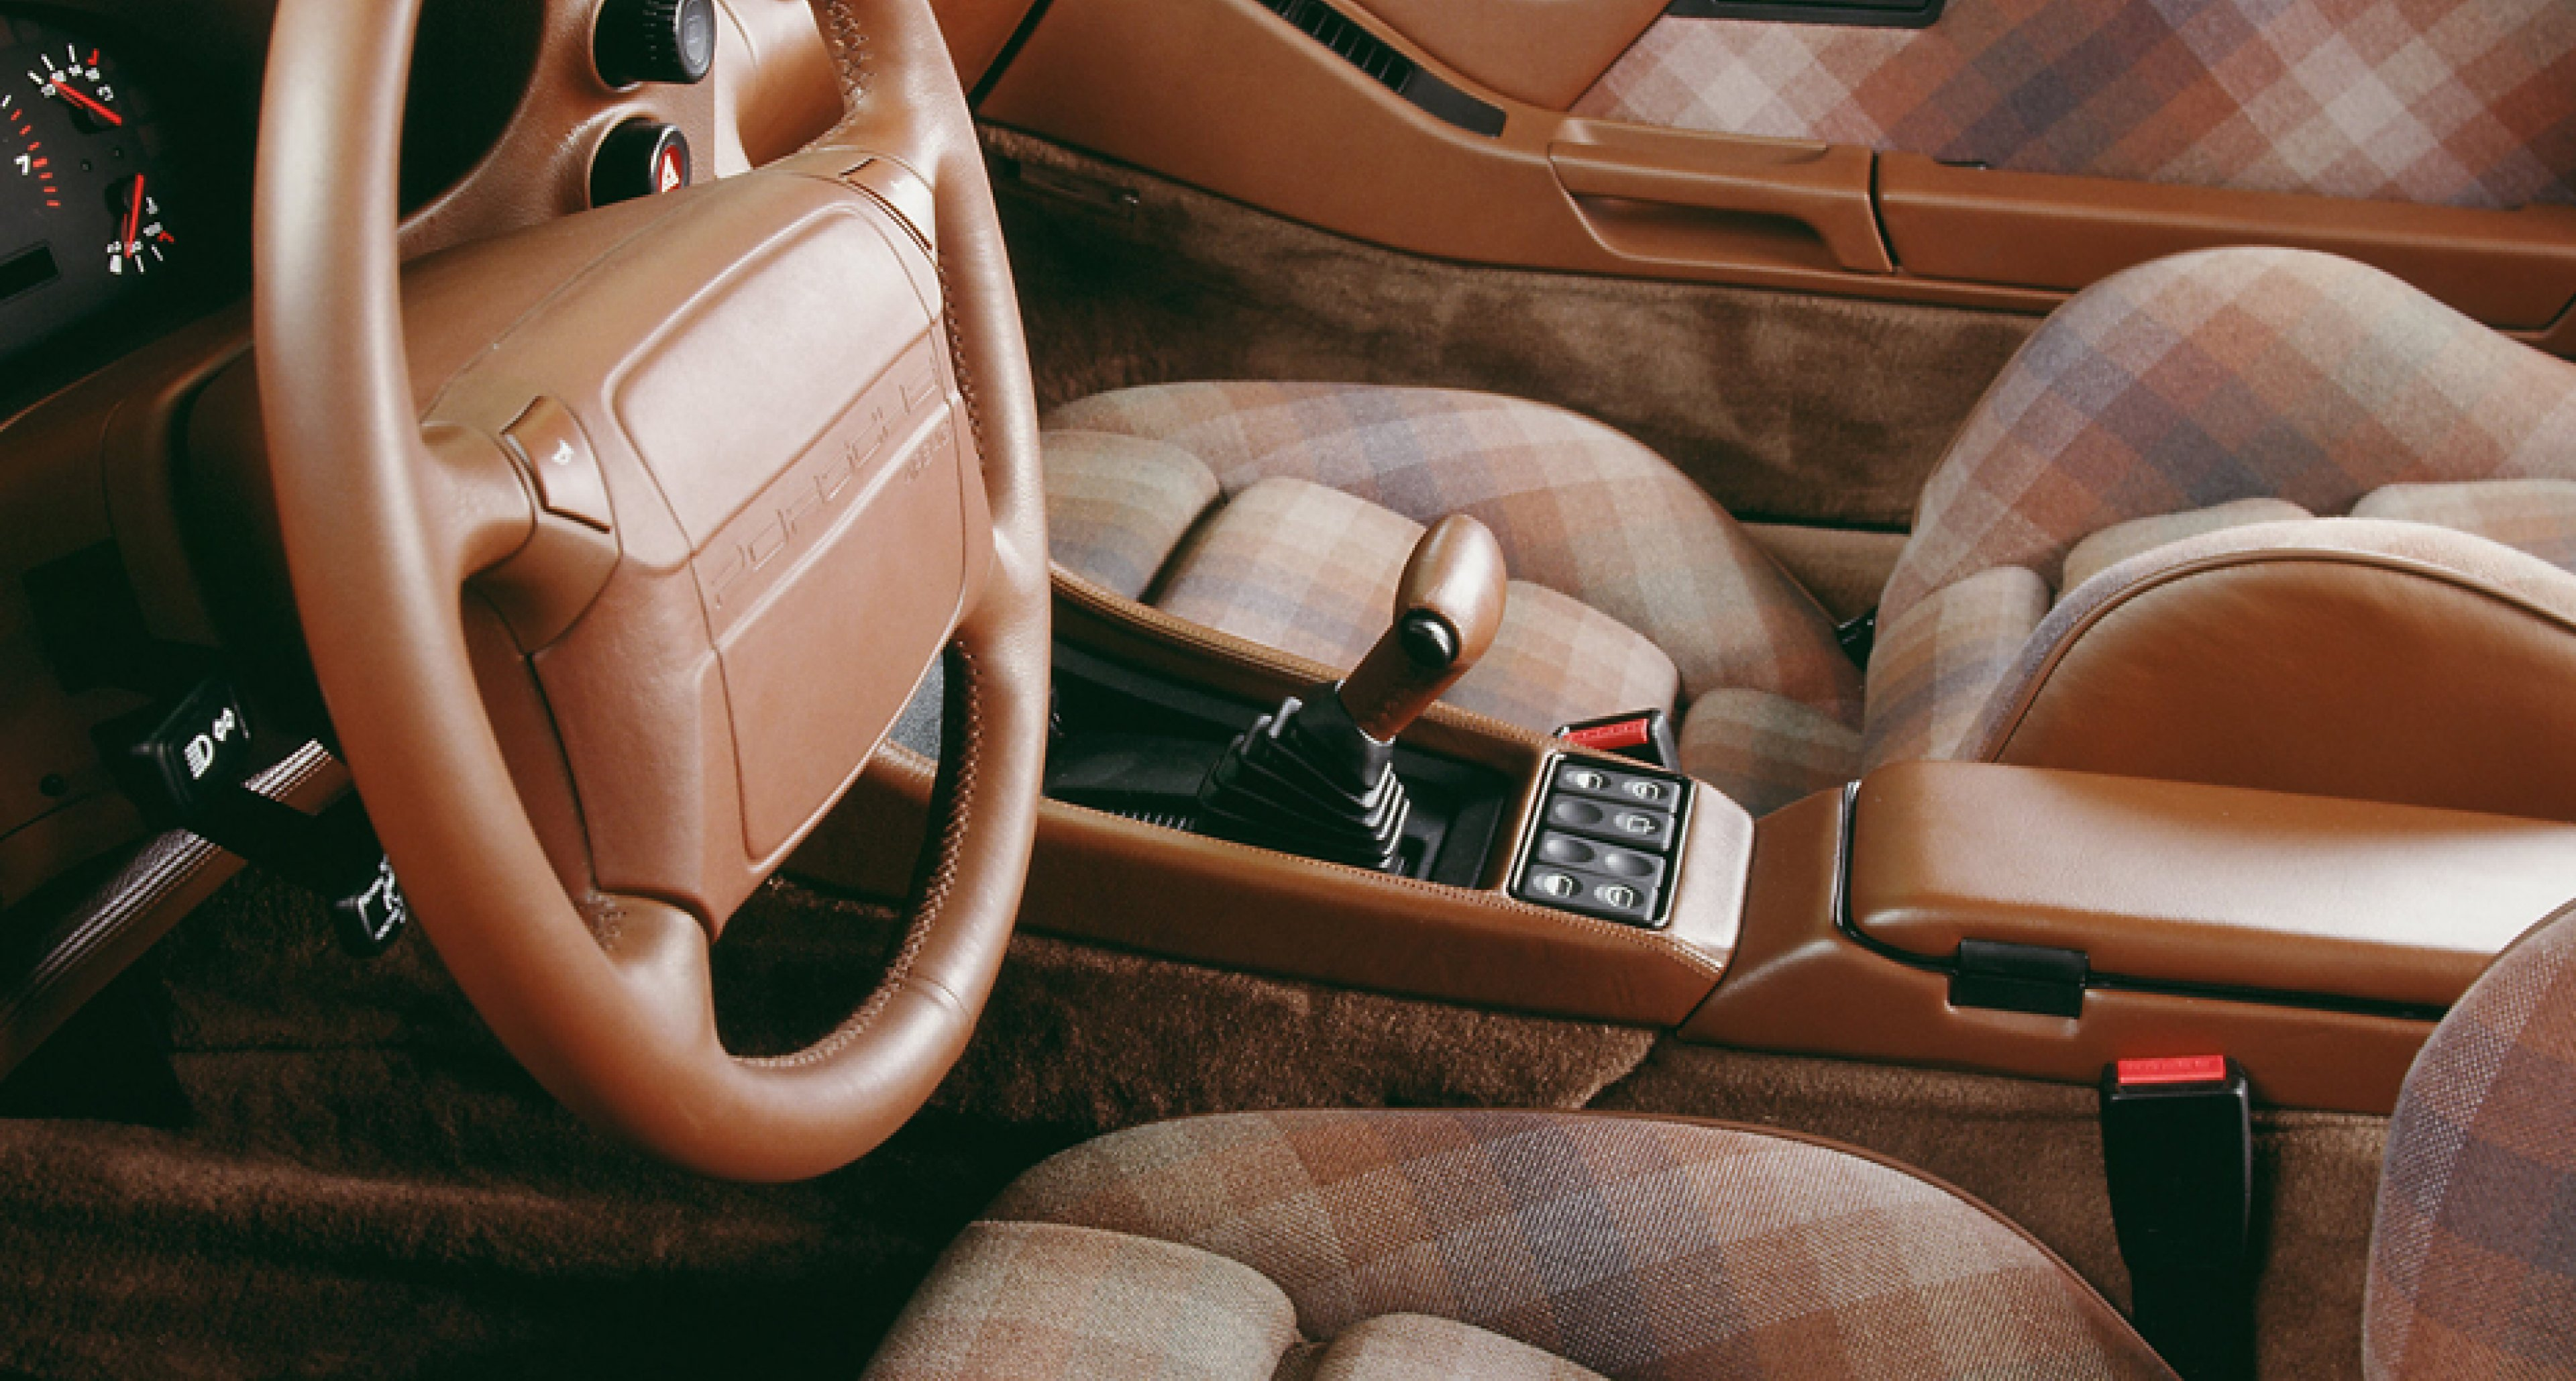 Seventies-style seats in a 1991 Porsche 928 S4.